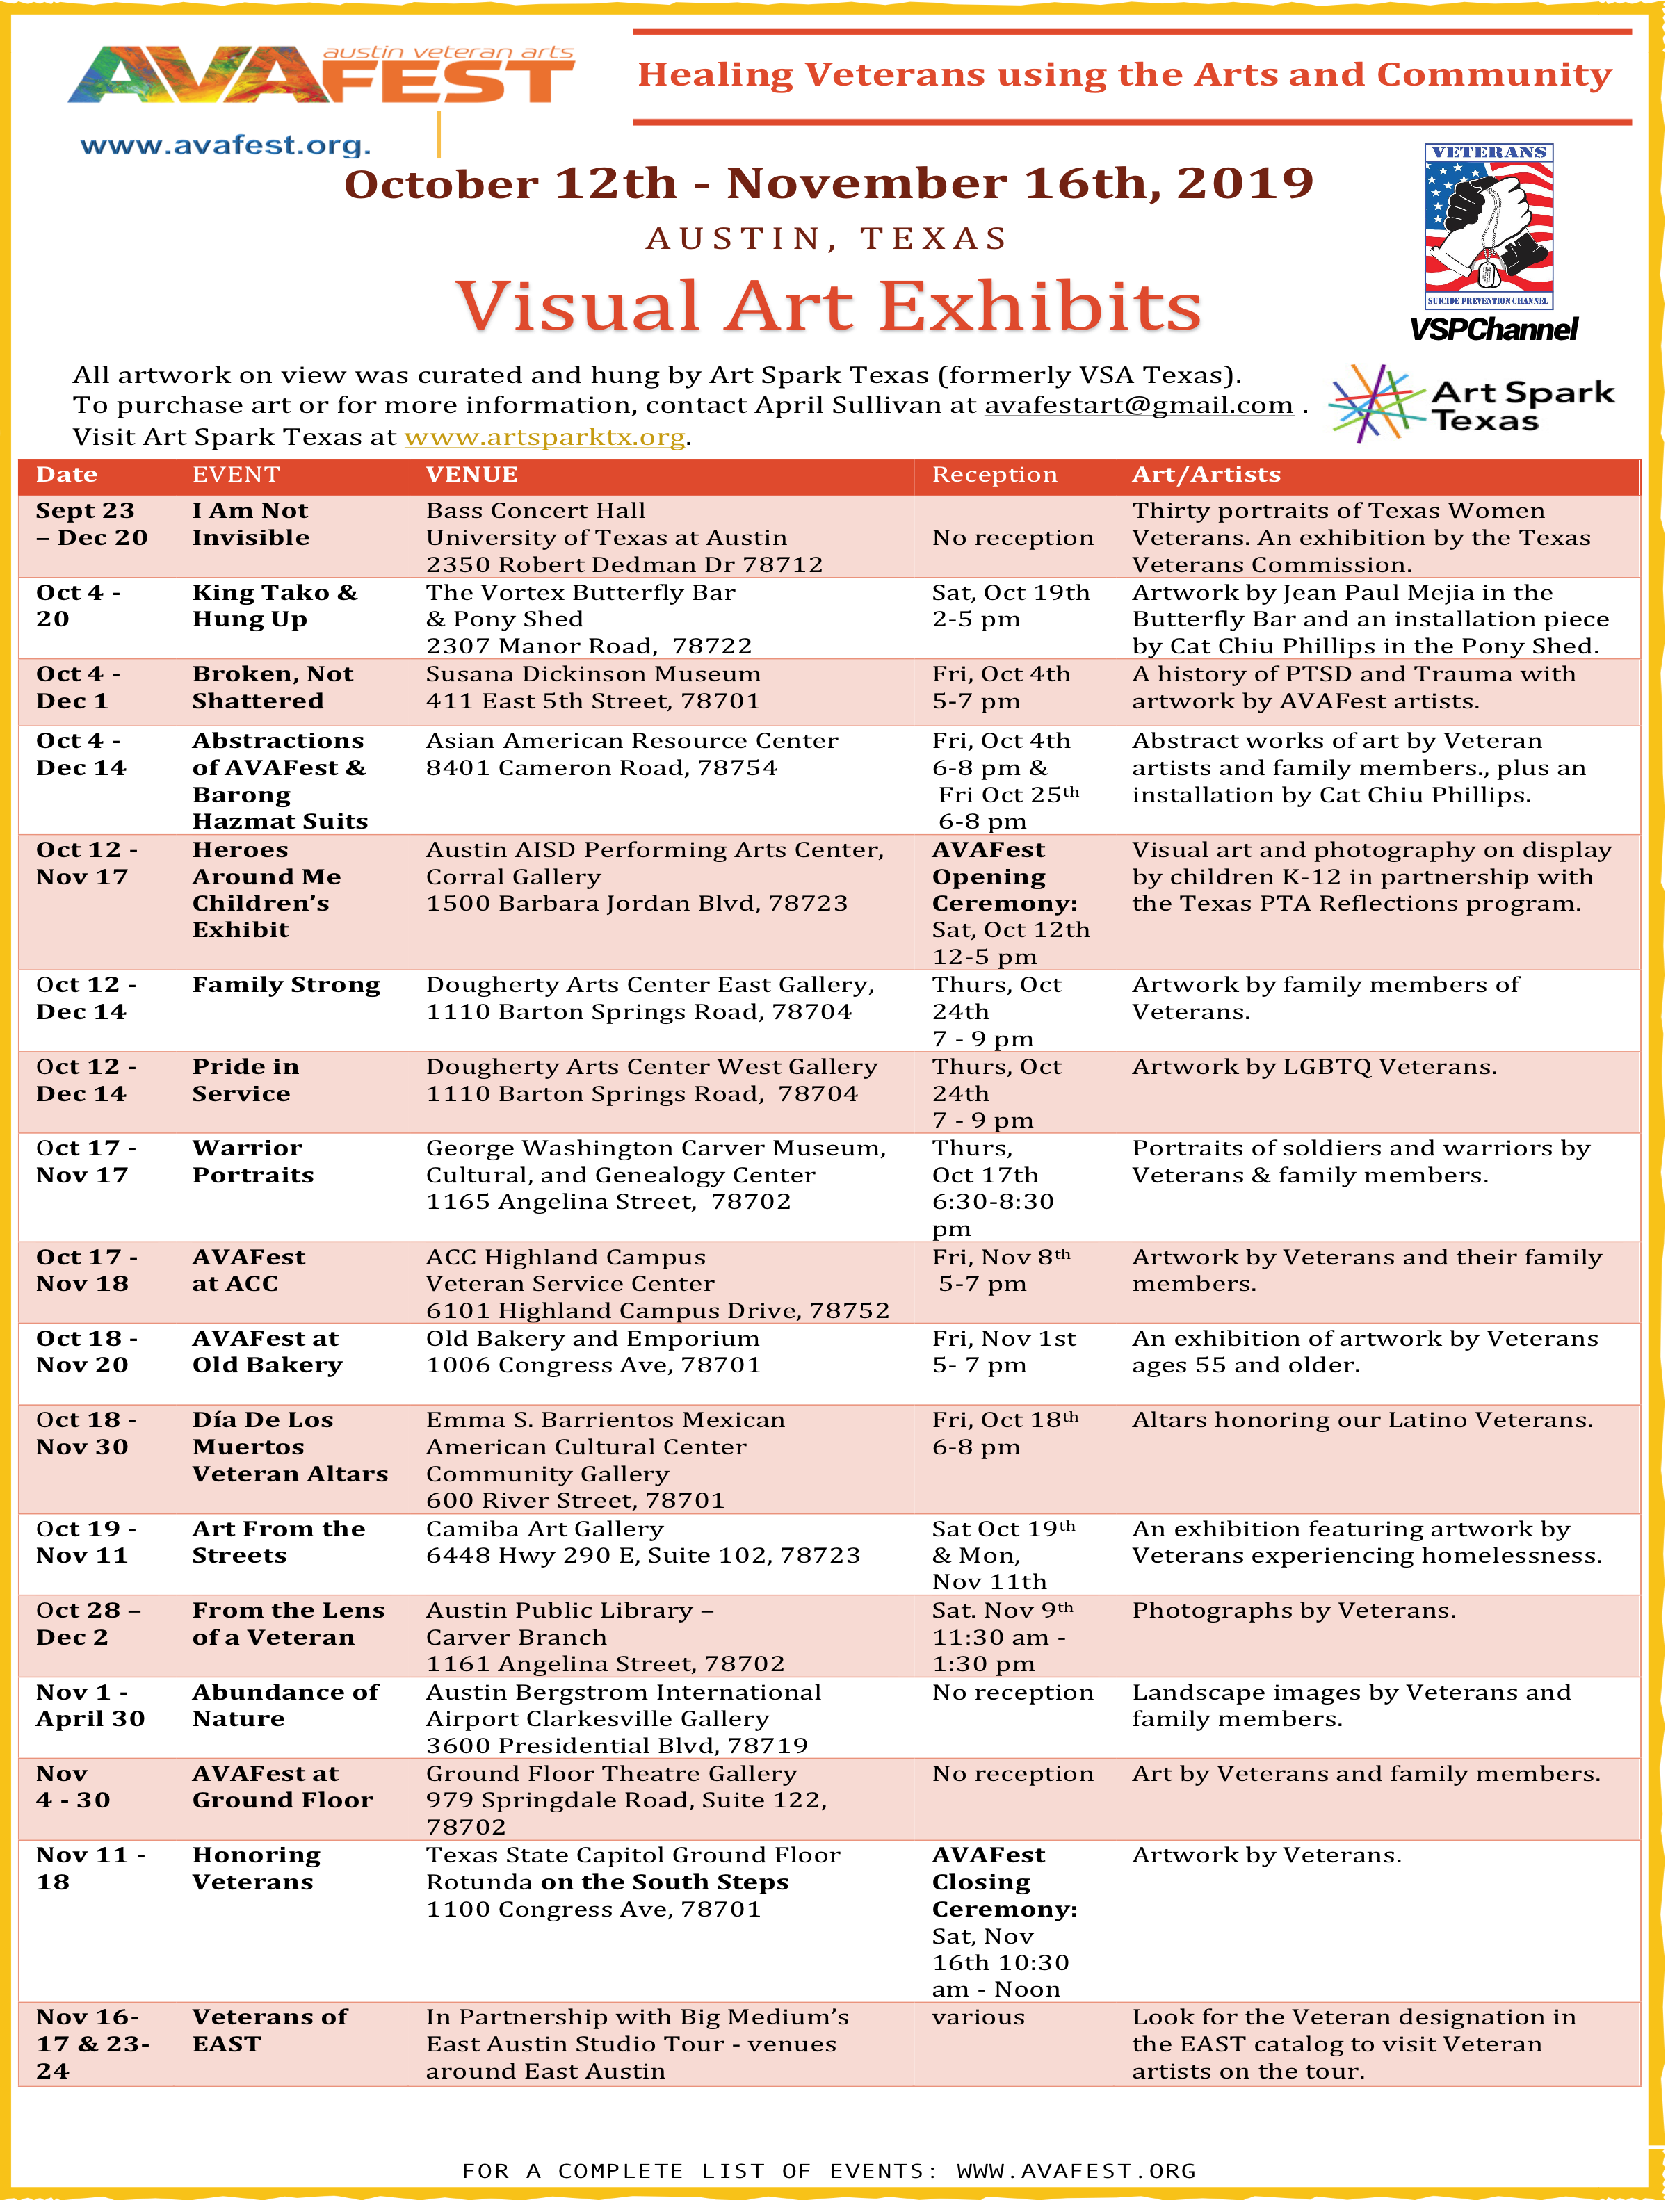 Visual Exhibits List AVAFEST 2019.png